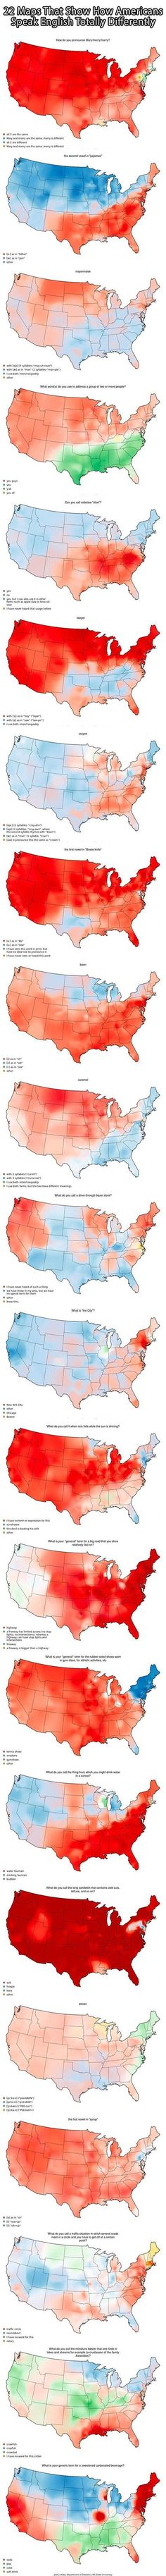 Americans Speak English Totally Differently From Each Other…: